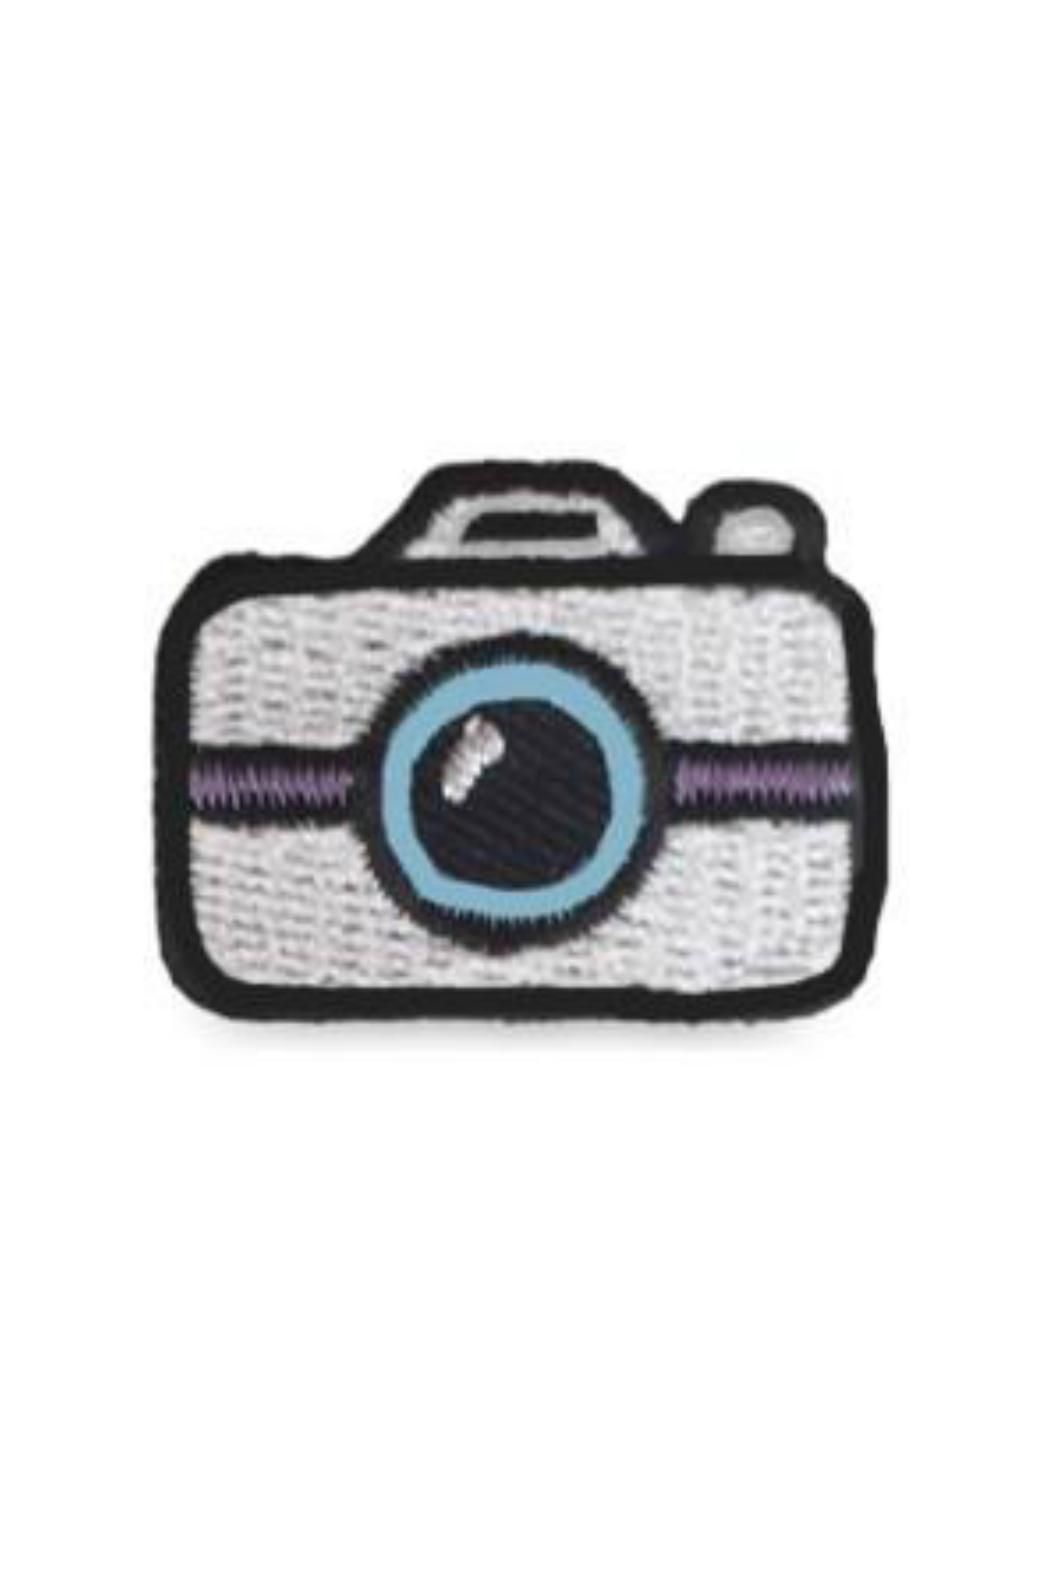 Our silver camera hipstapatch™ is an embroidered fabric patch that